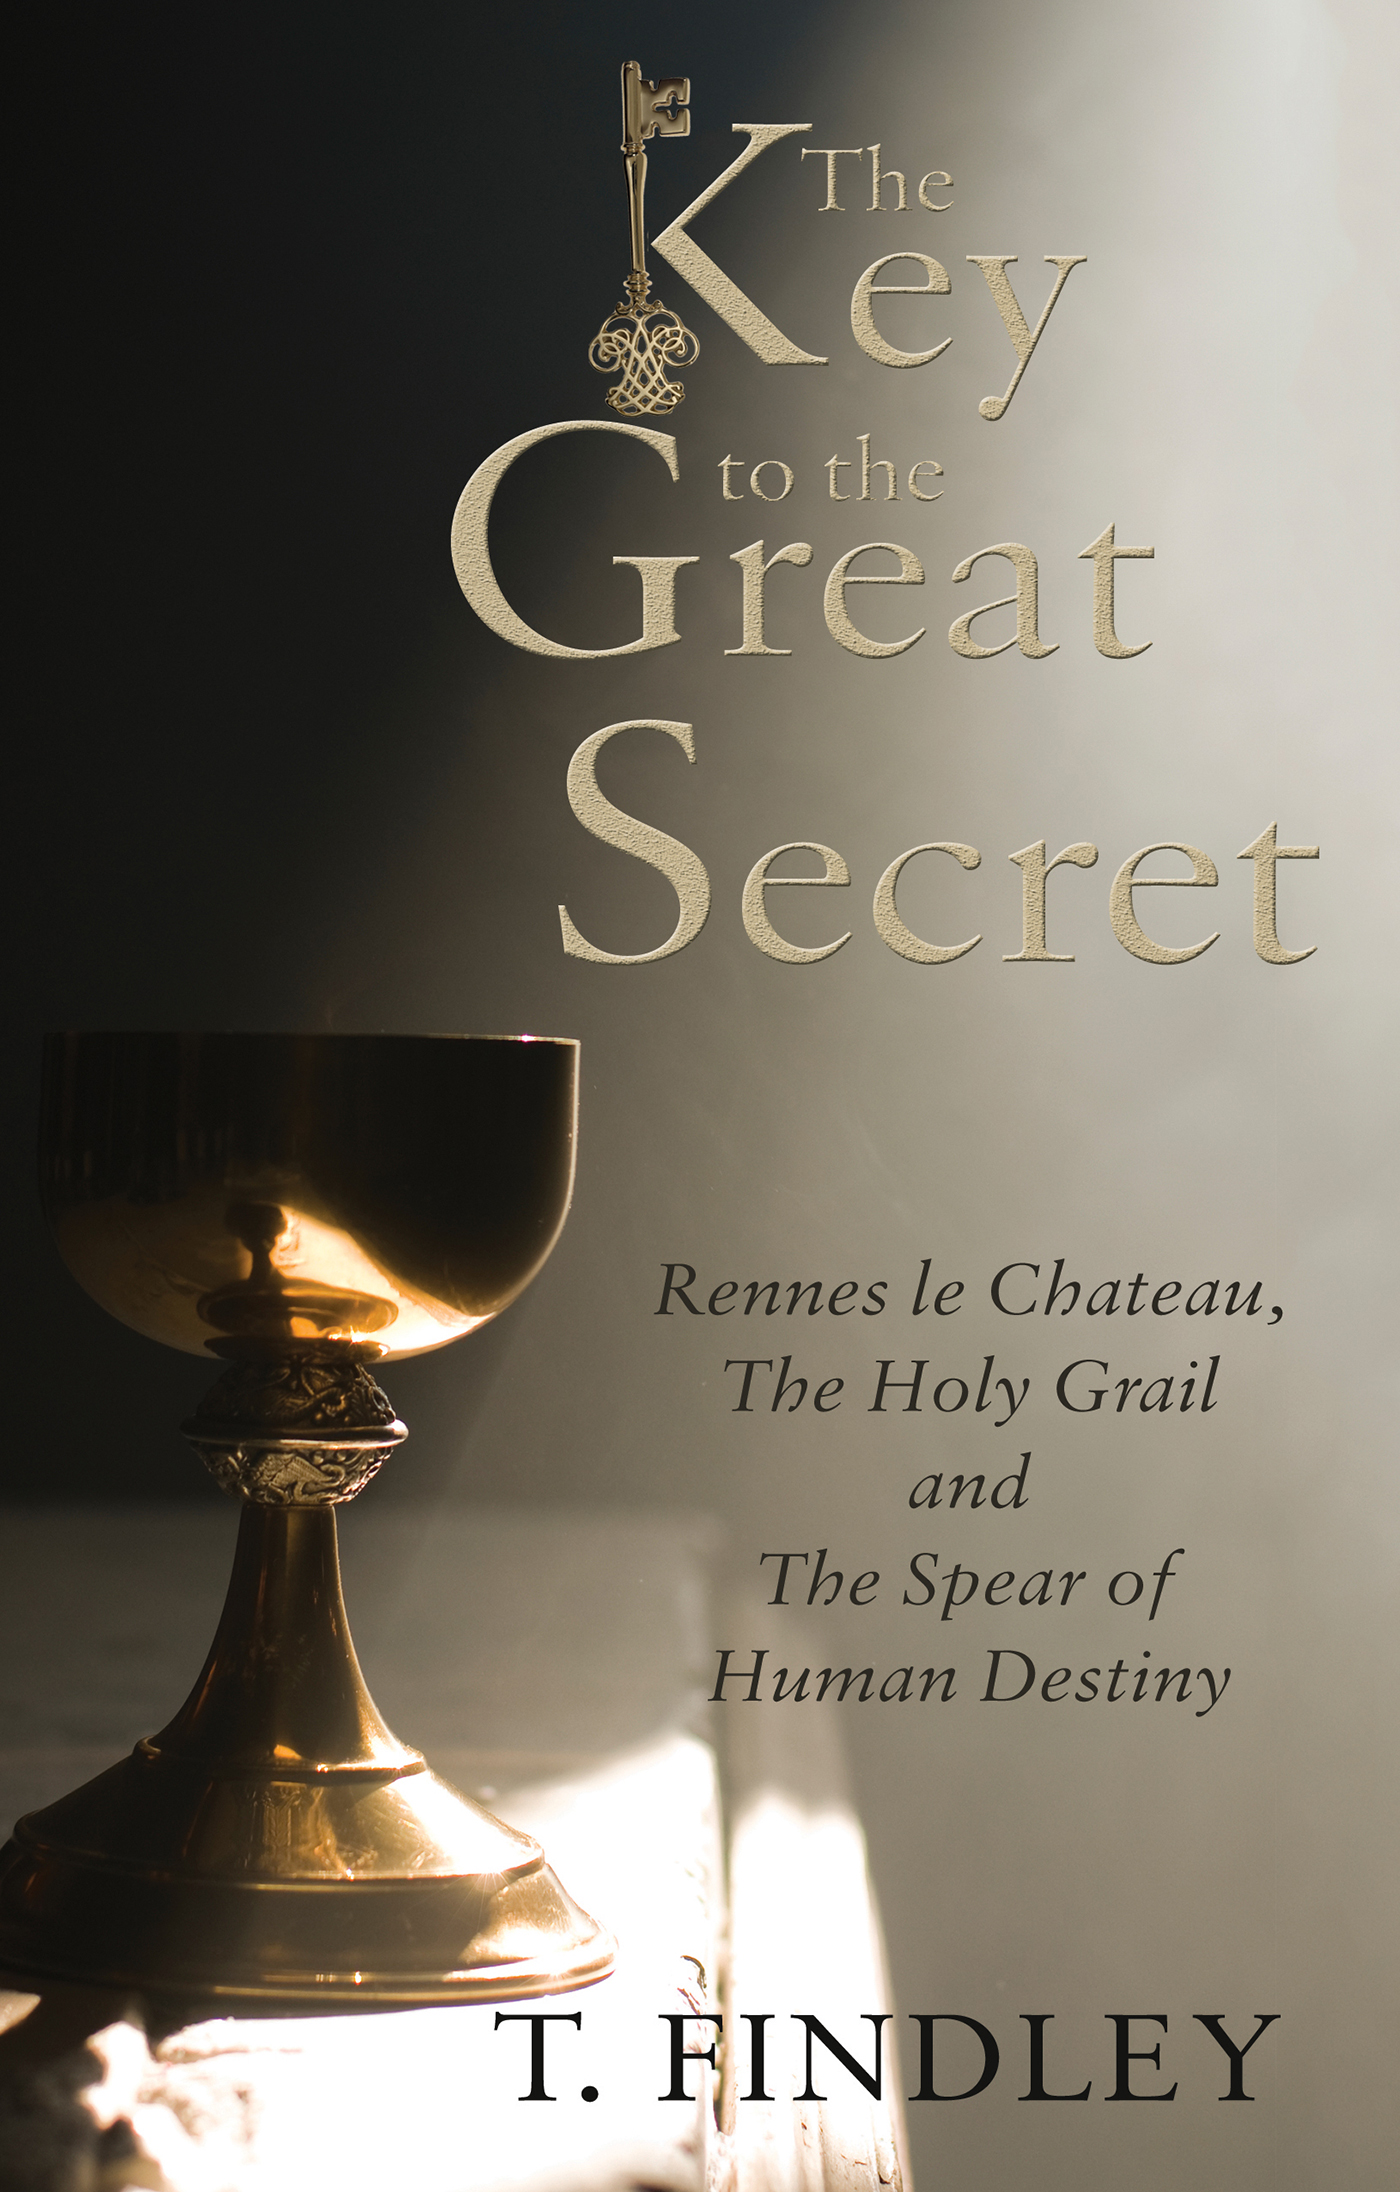 The Key to the Great Secret Rennes le Chateau,  The Holy Grail and The Spear of Human Destiny